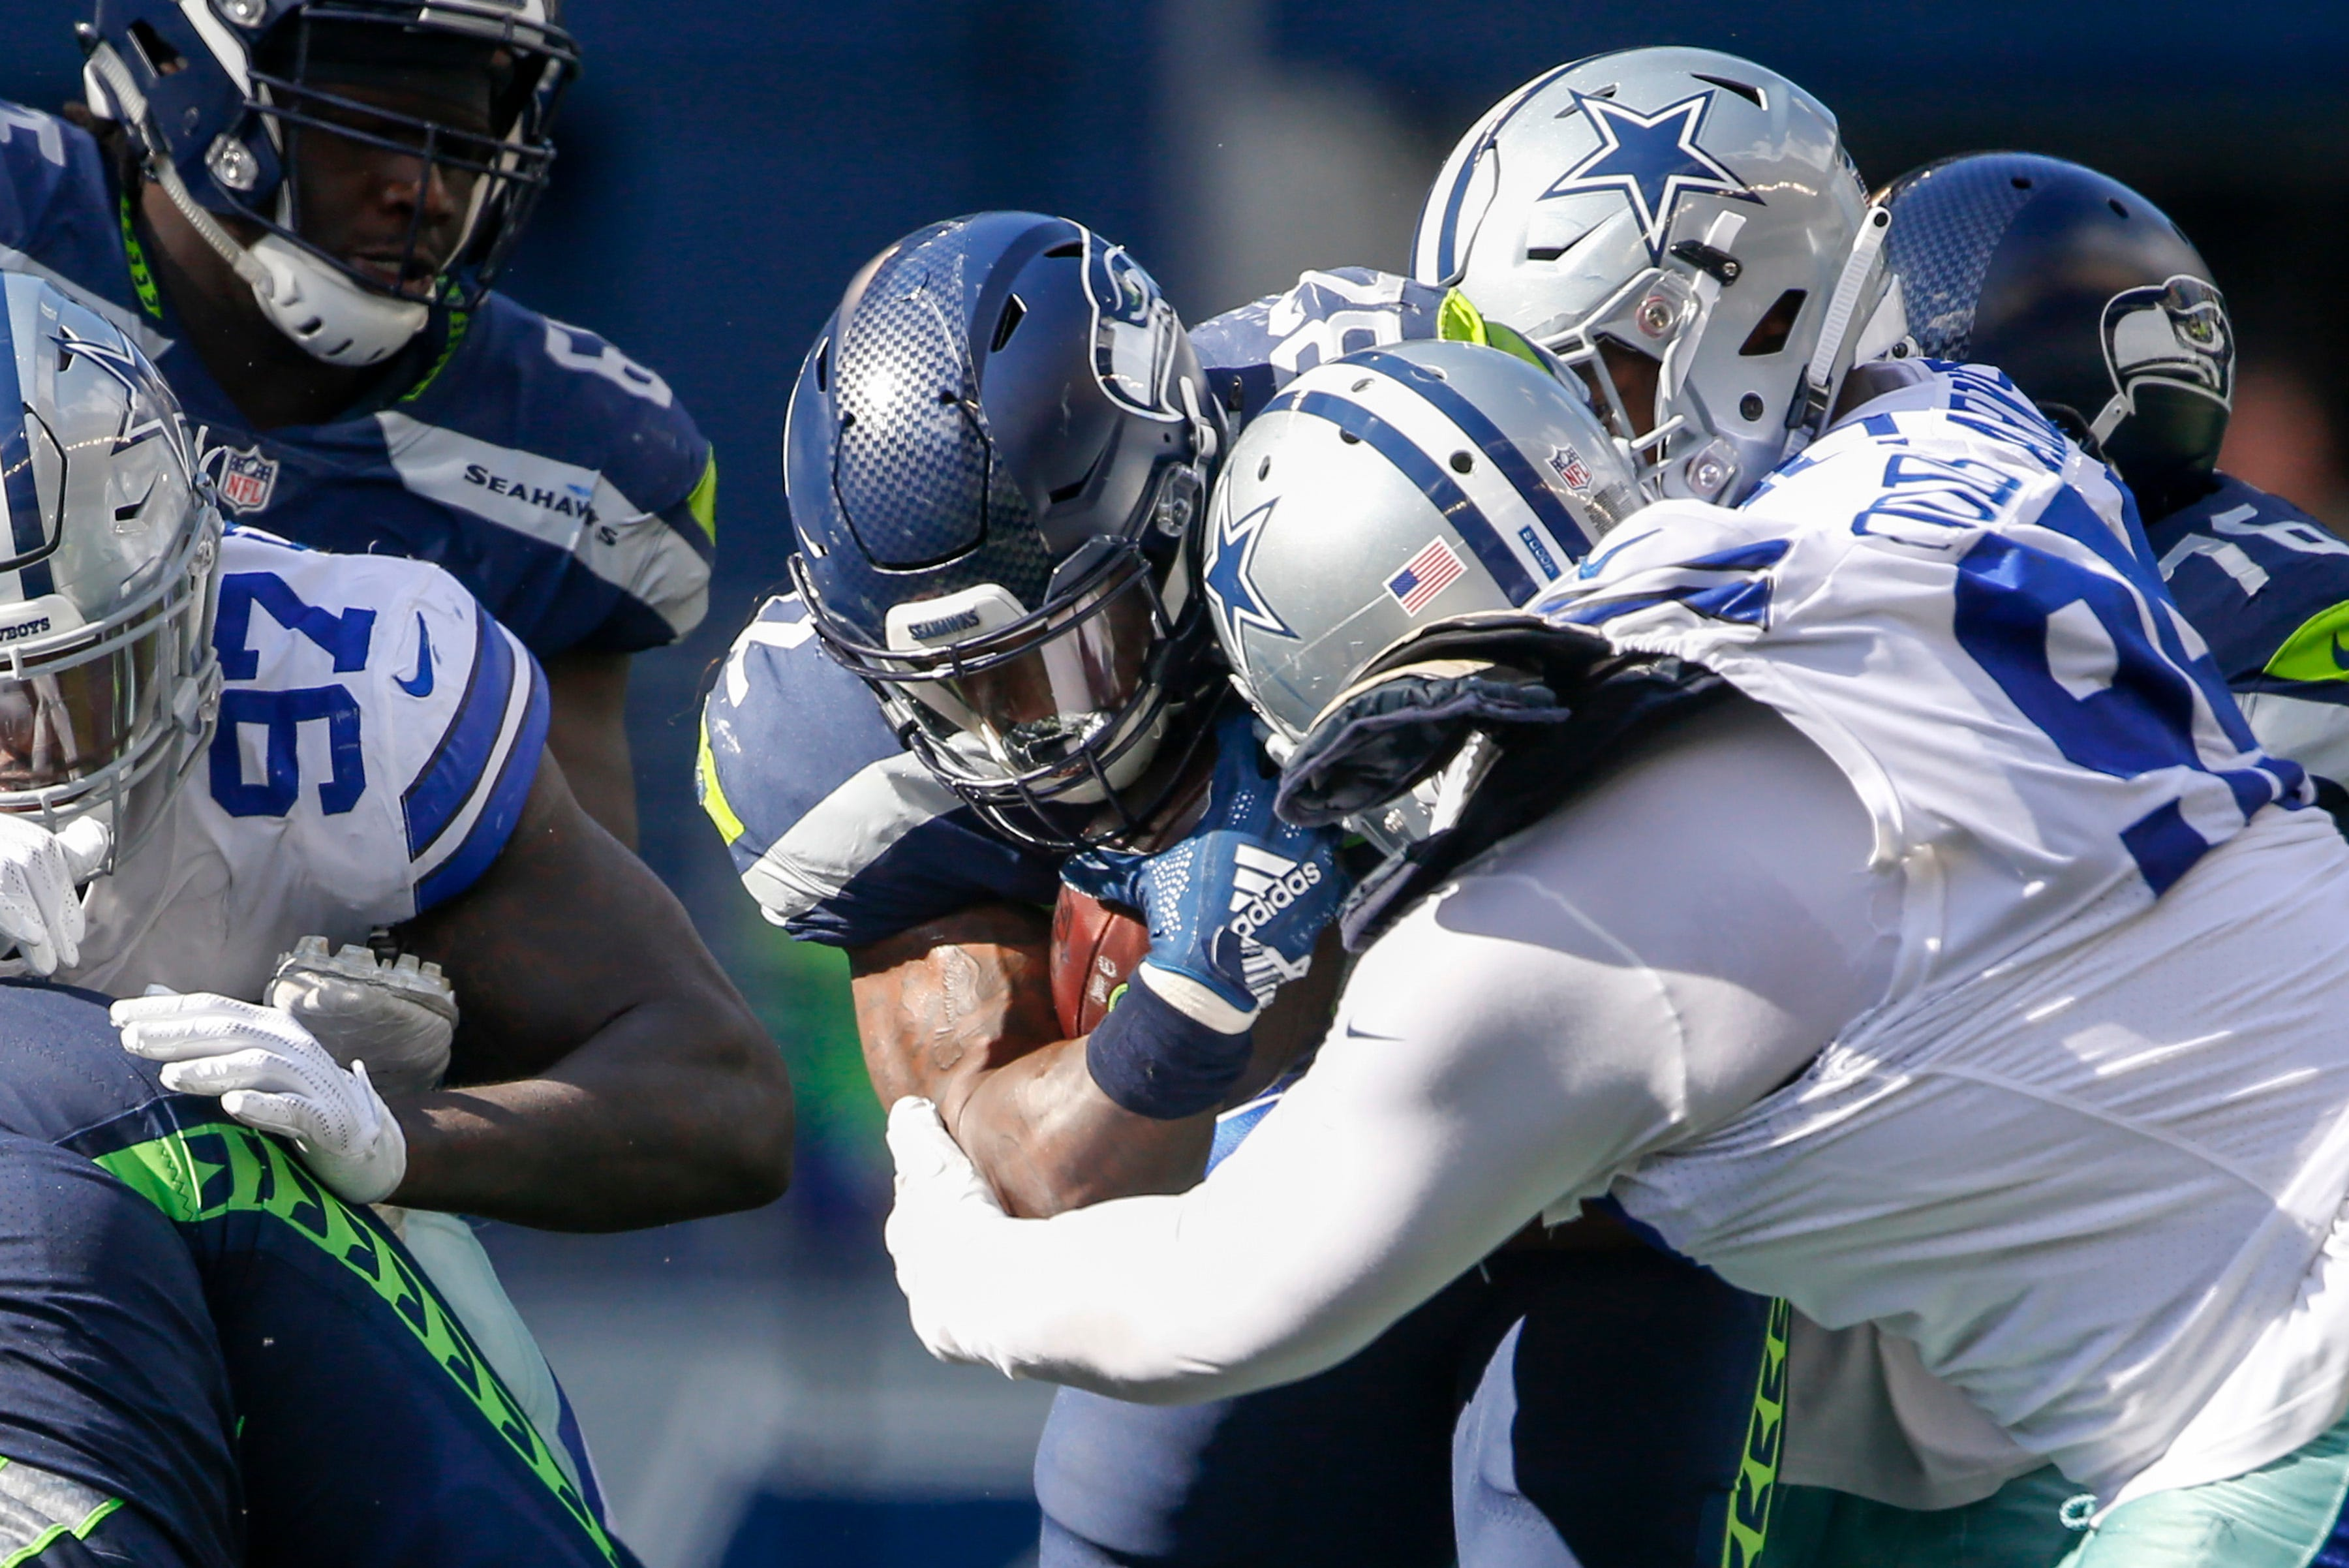 Seattle Seahawks running back Chris Carson (32) is tackled by Dallas Cowboys nose tackle Antwaun Woods (99) during the third quarter at CenturyLink Field.